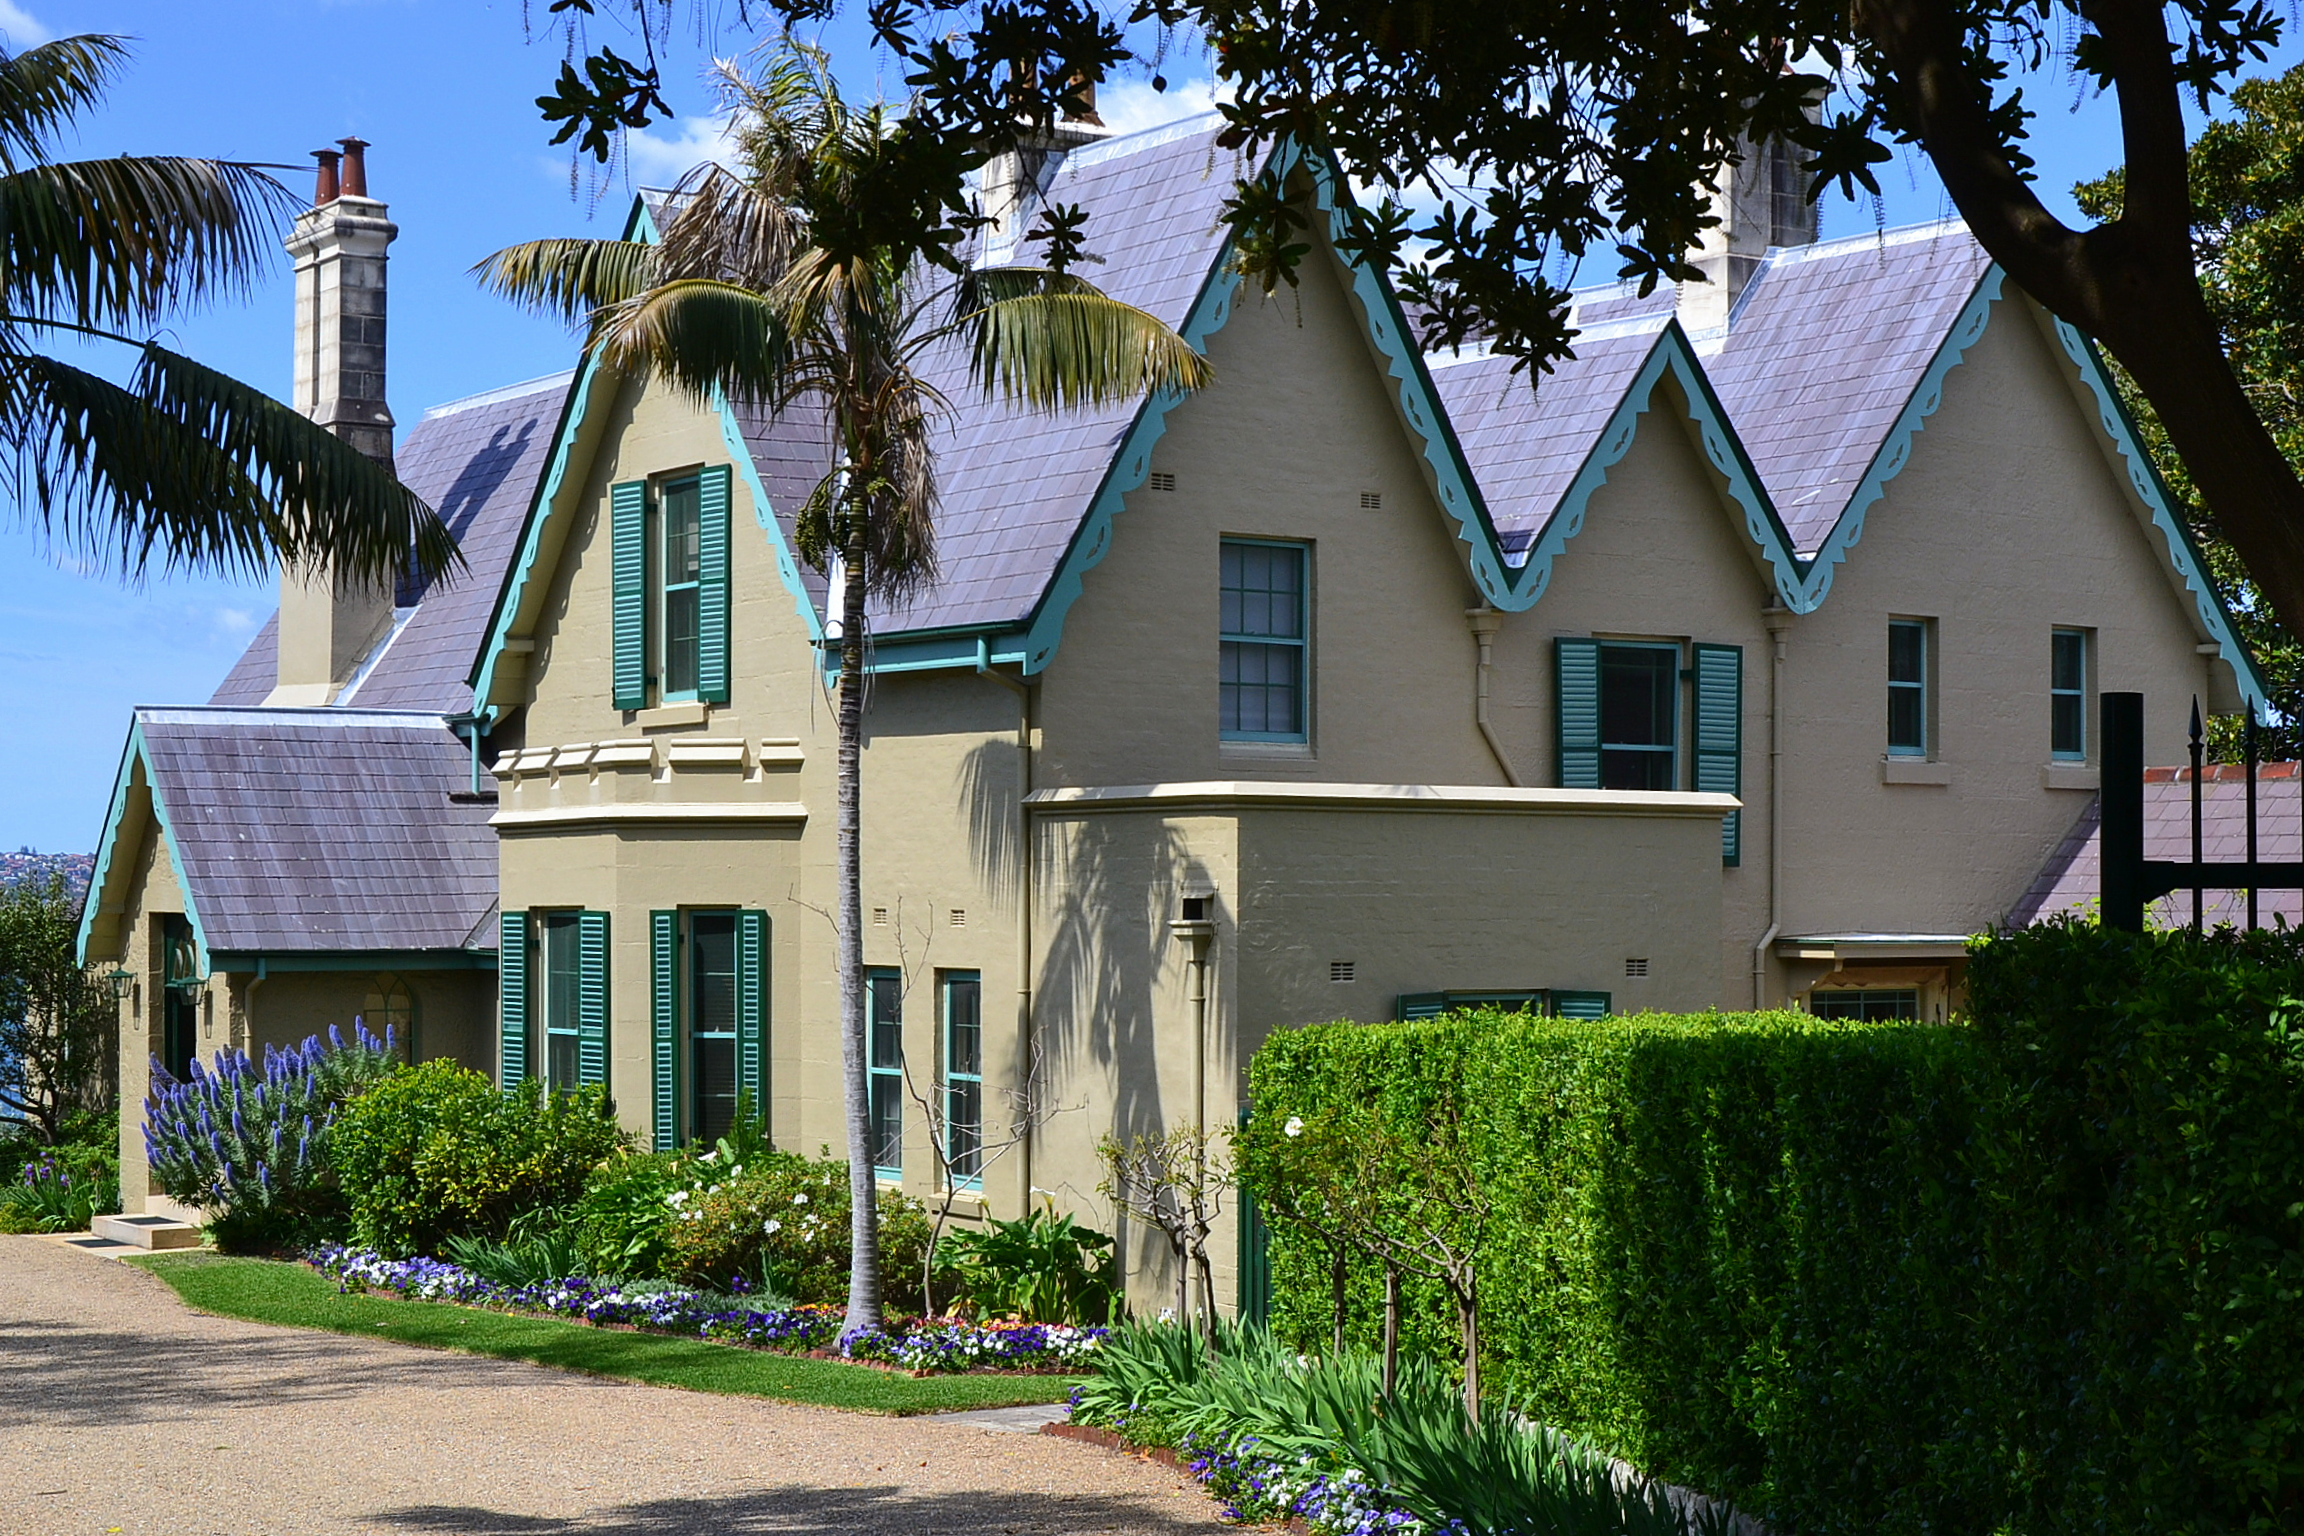 kirribilli house This is love makes a way - kirribilli house - jarrod mckenna by shark eats  bear on vimeo, the home for high quality videos and the people.